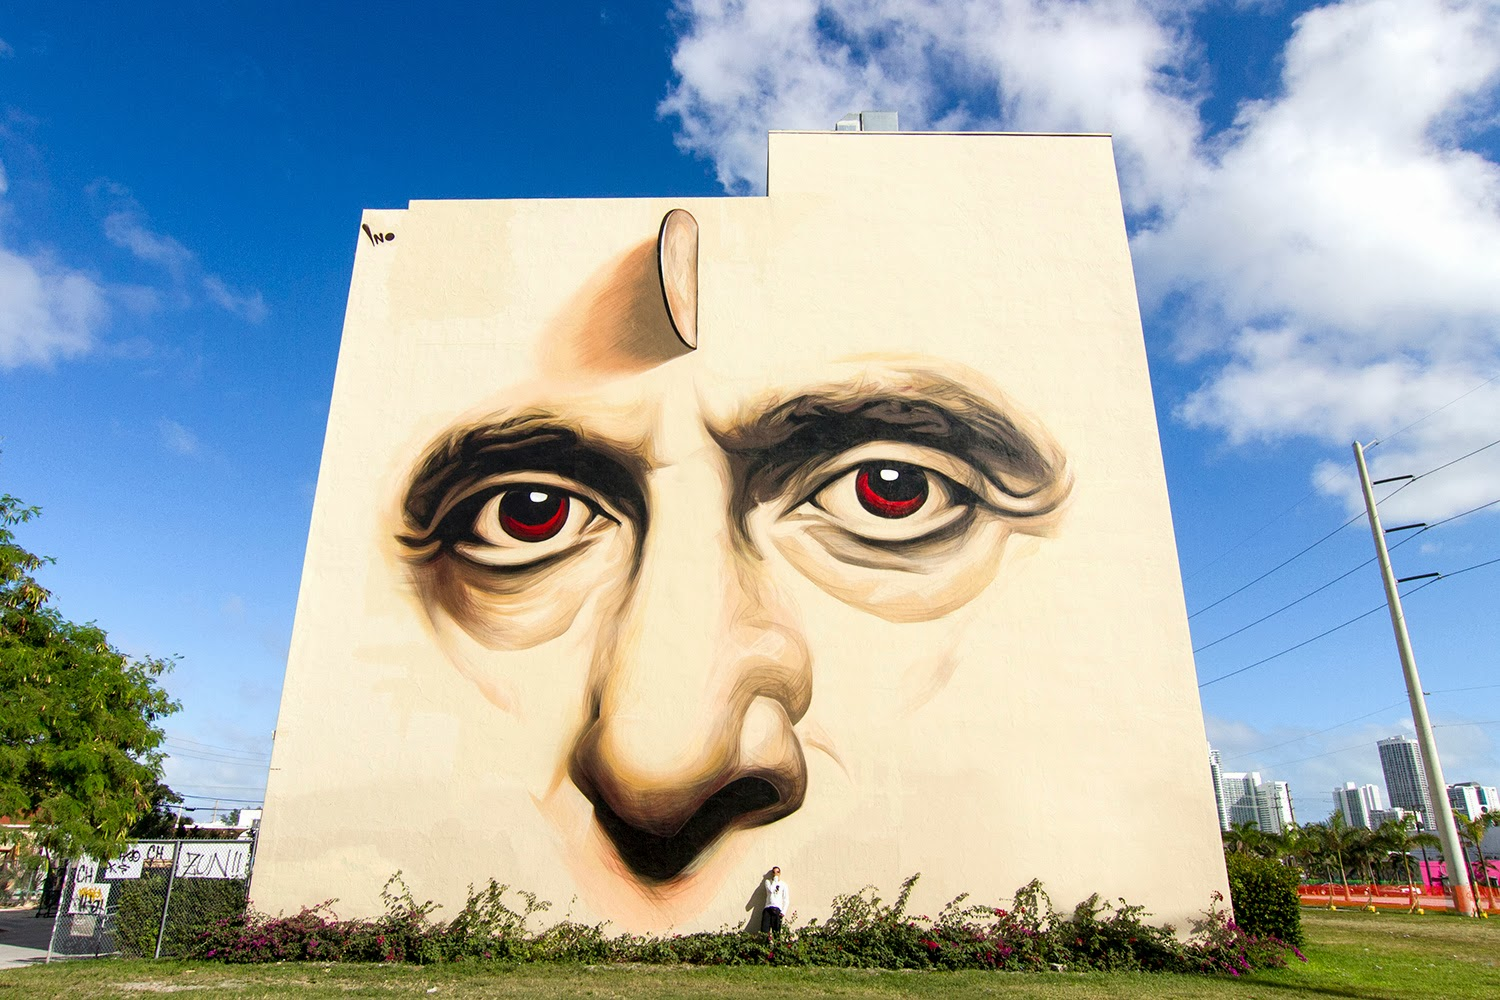 ino-in-heaven-with-you-new-mural-in-wynwood-miami-01